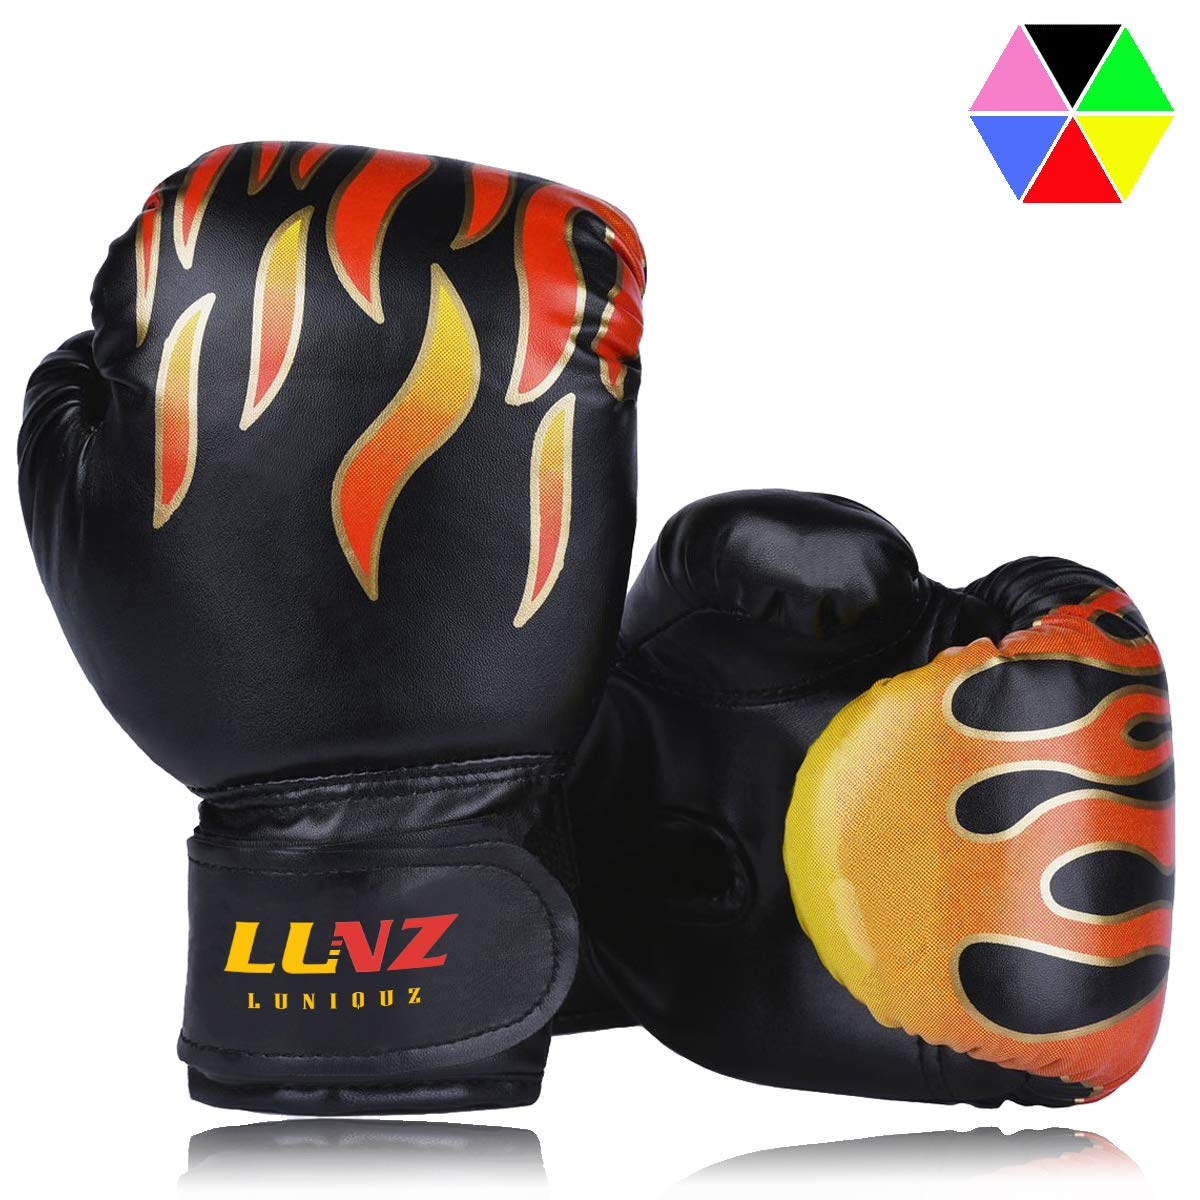 Luniquz Kids Boxing Gloves, Child Punching Gloves for Punch Bag Training